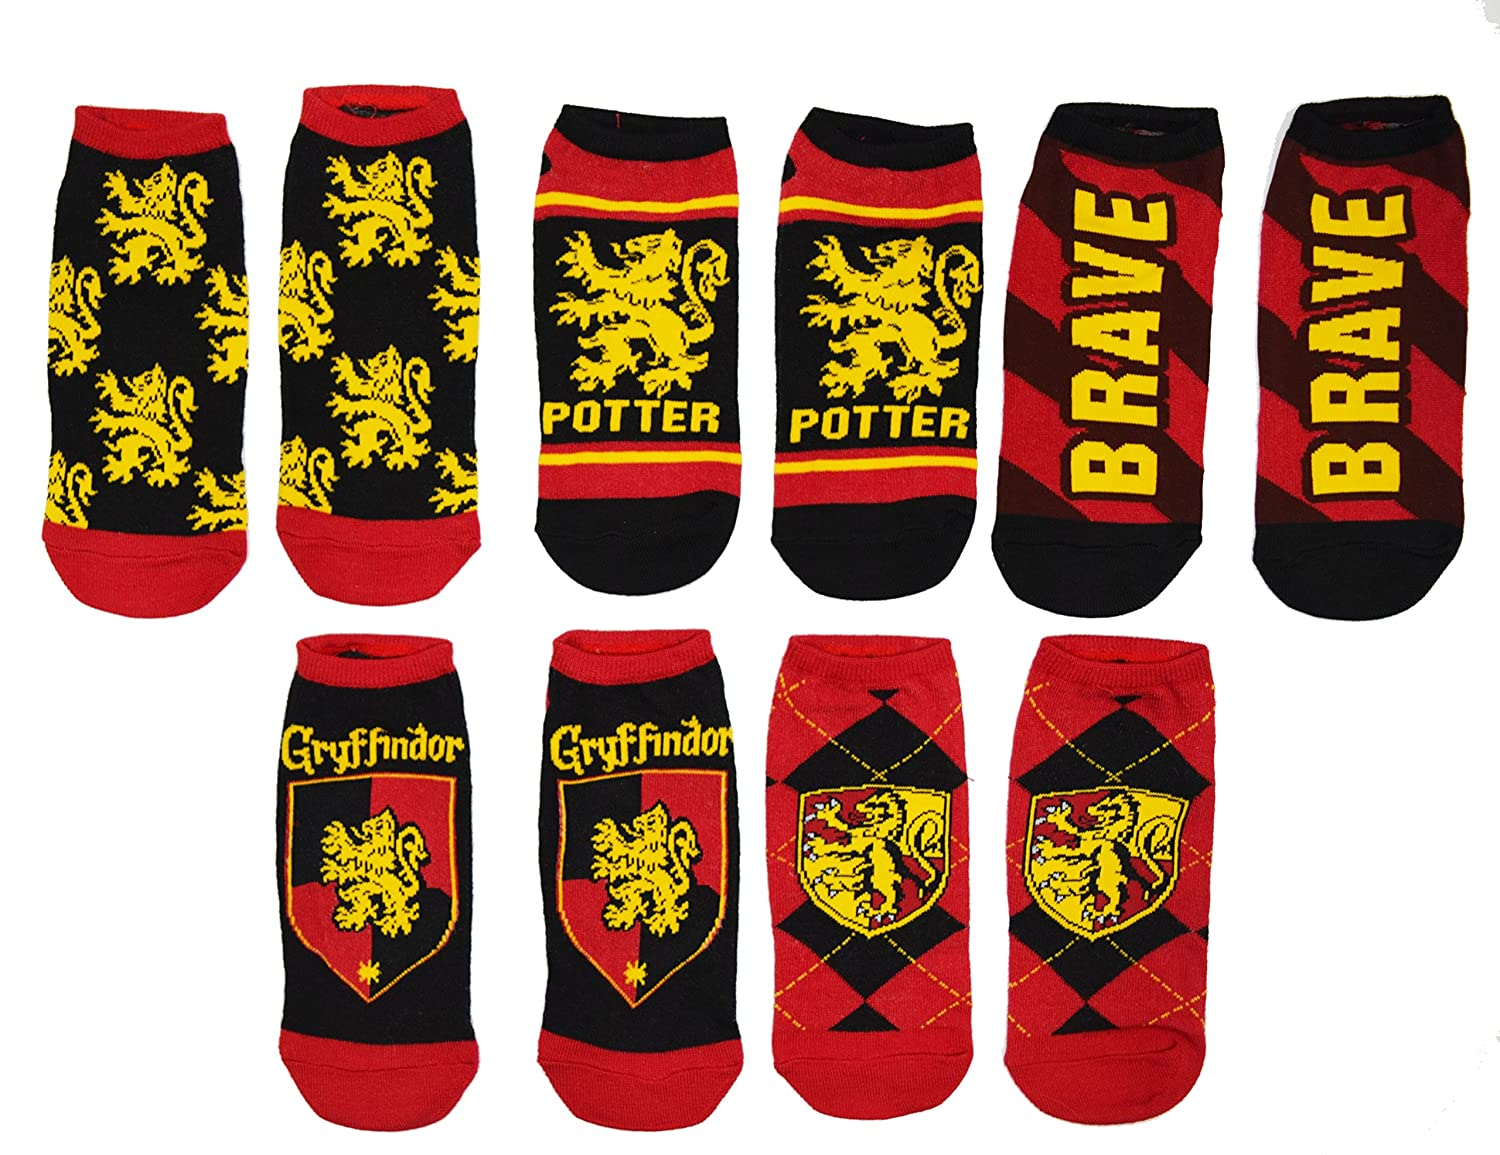 Harry Potter 5 Pack Gryffindor Ravenclaw Huffle Puff Slytherin House No Show Ankle Socks by Hyp